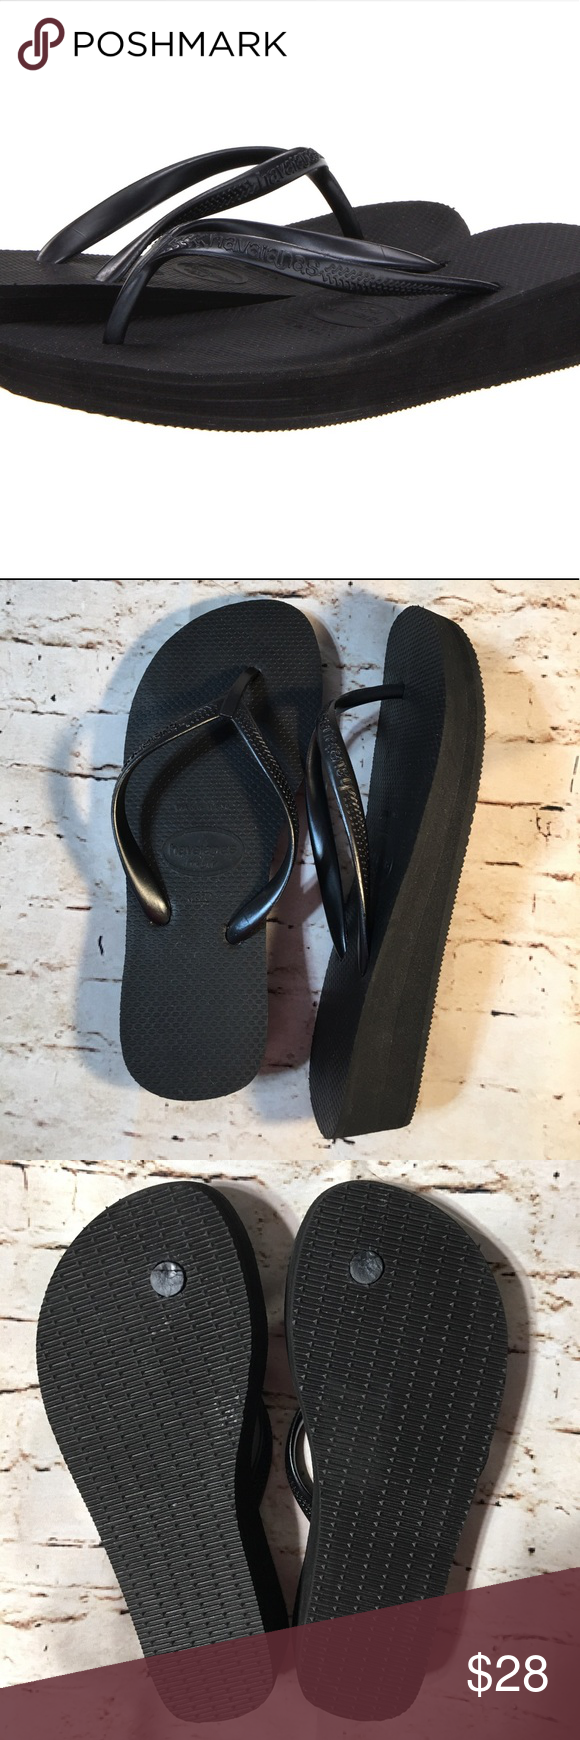 61cbfdb01ebe Havaianas Highlight Wedge Flip Flop Black Sandals Step up your flip flop  game in these High